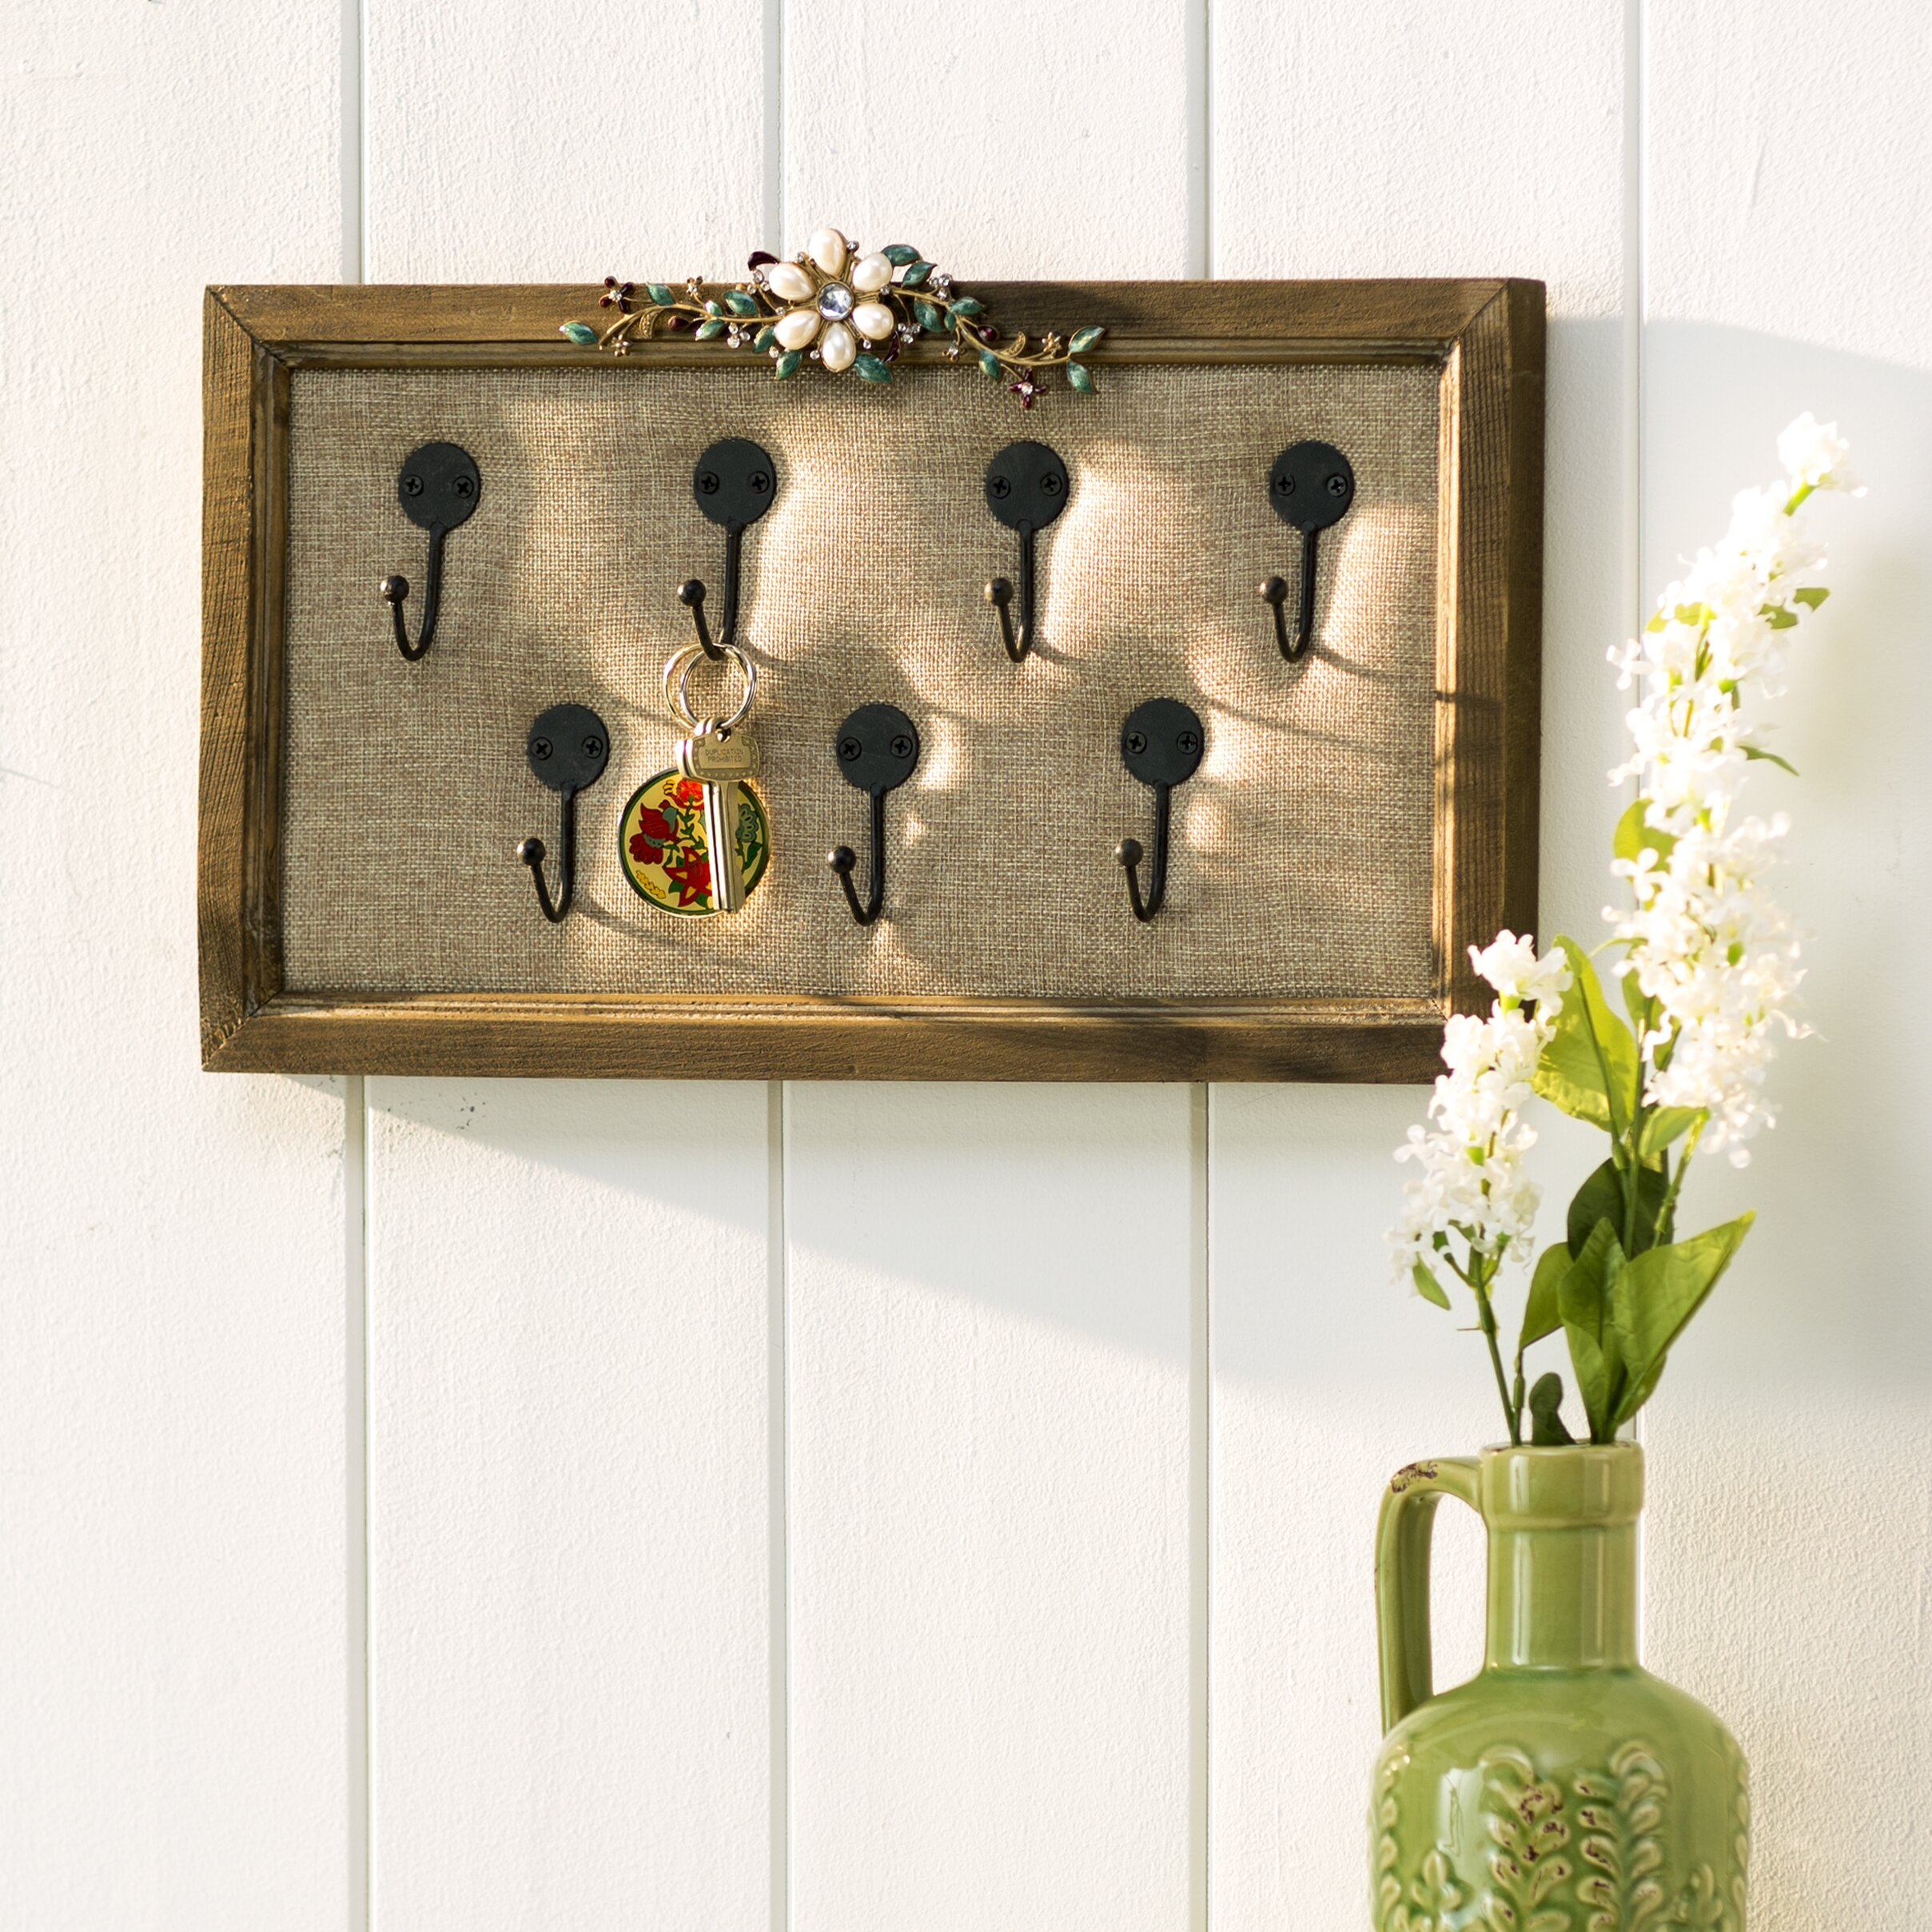 Lark Manor Bluebell Wall Mounted Jewelry Holder & Reviews ...